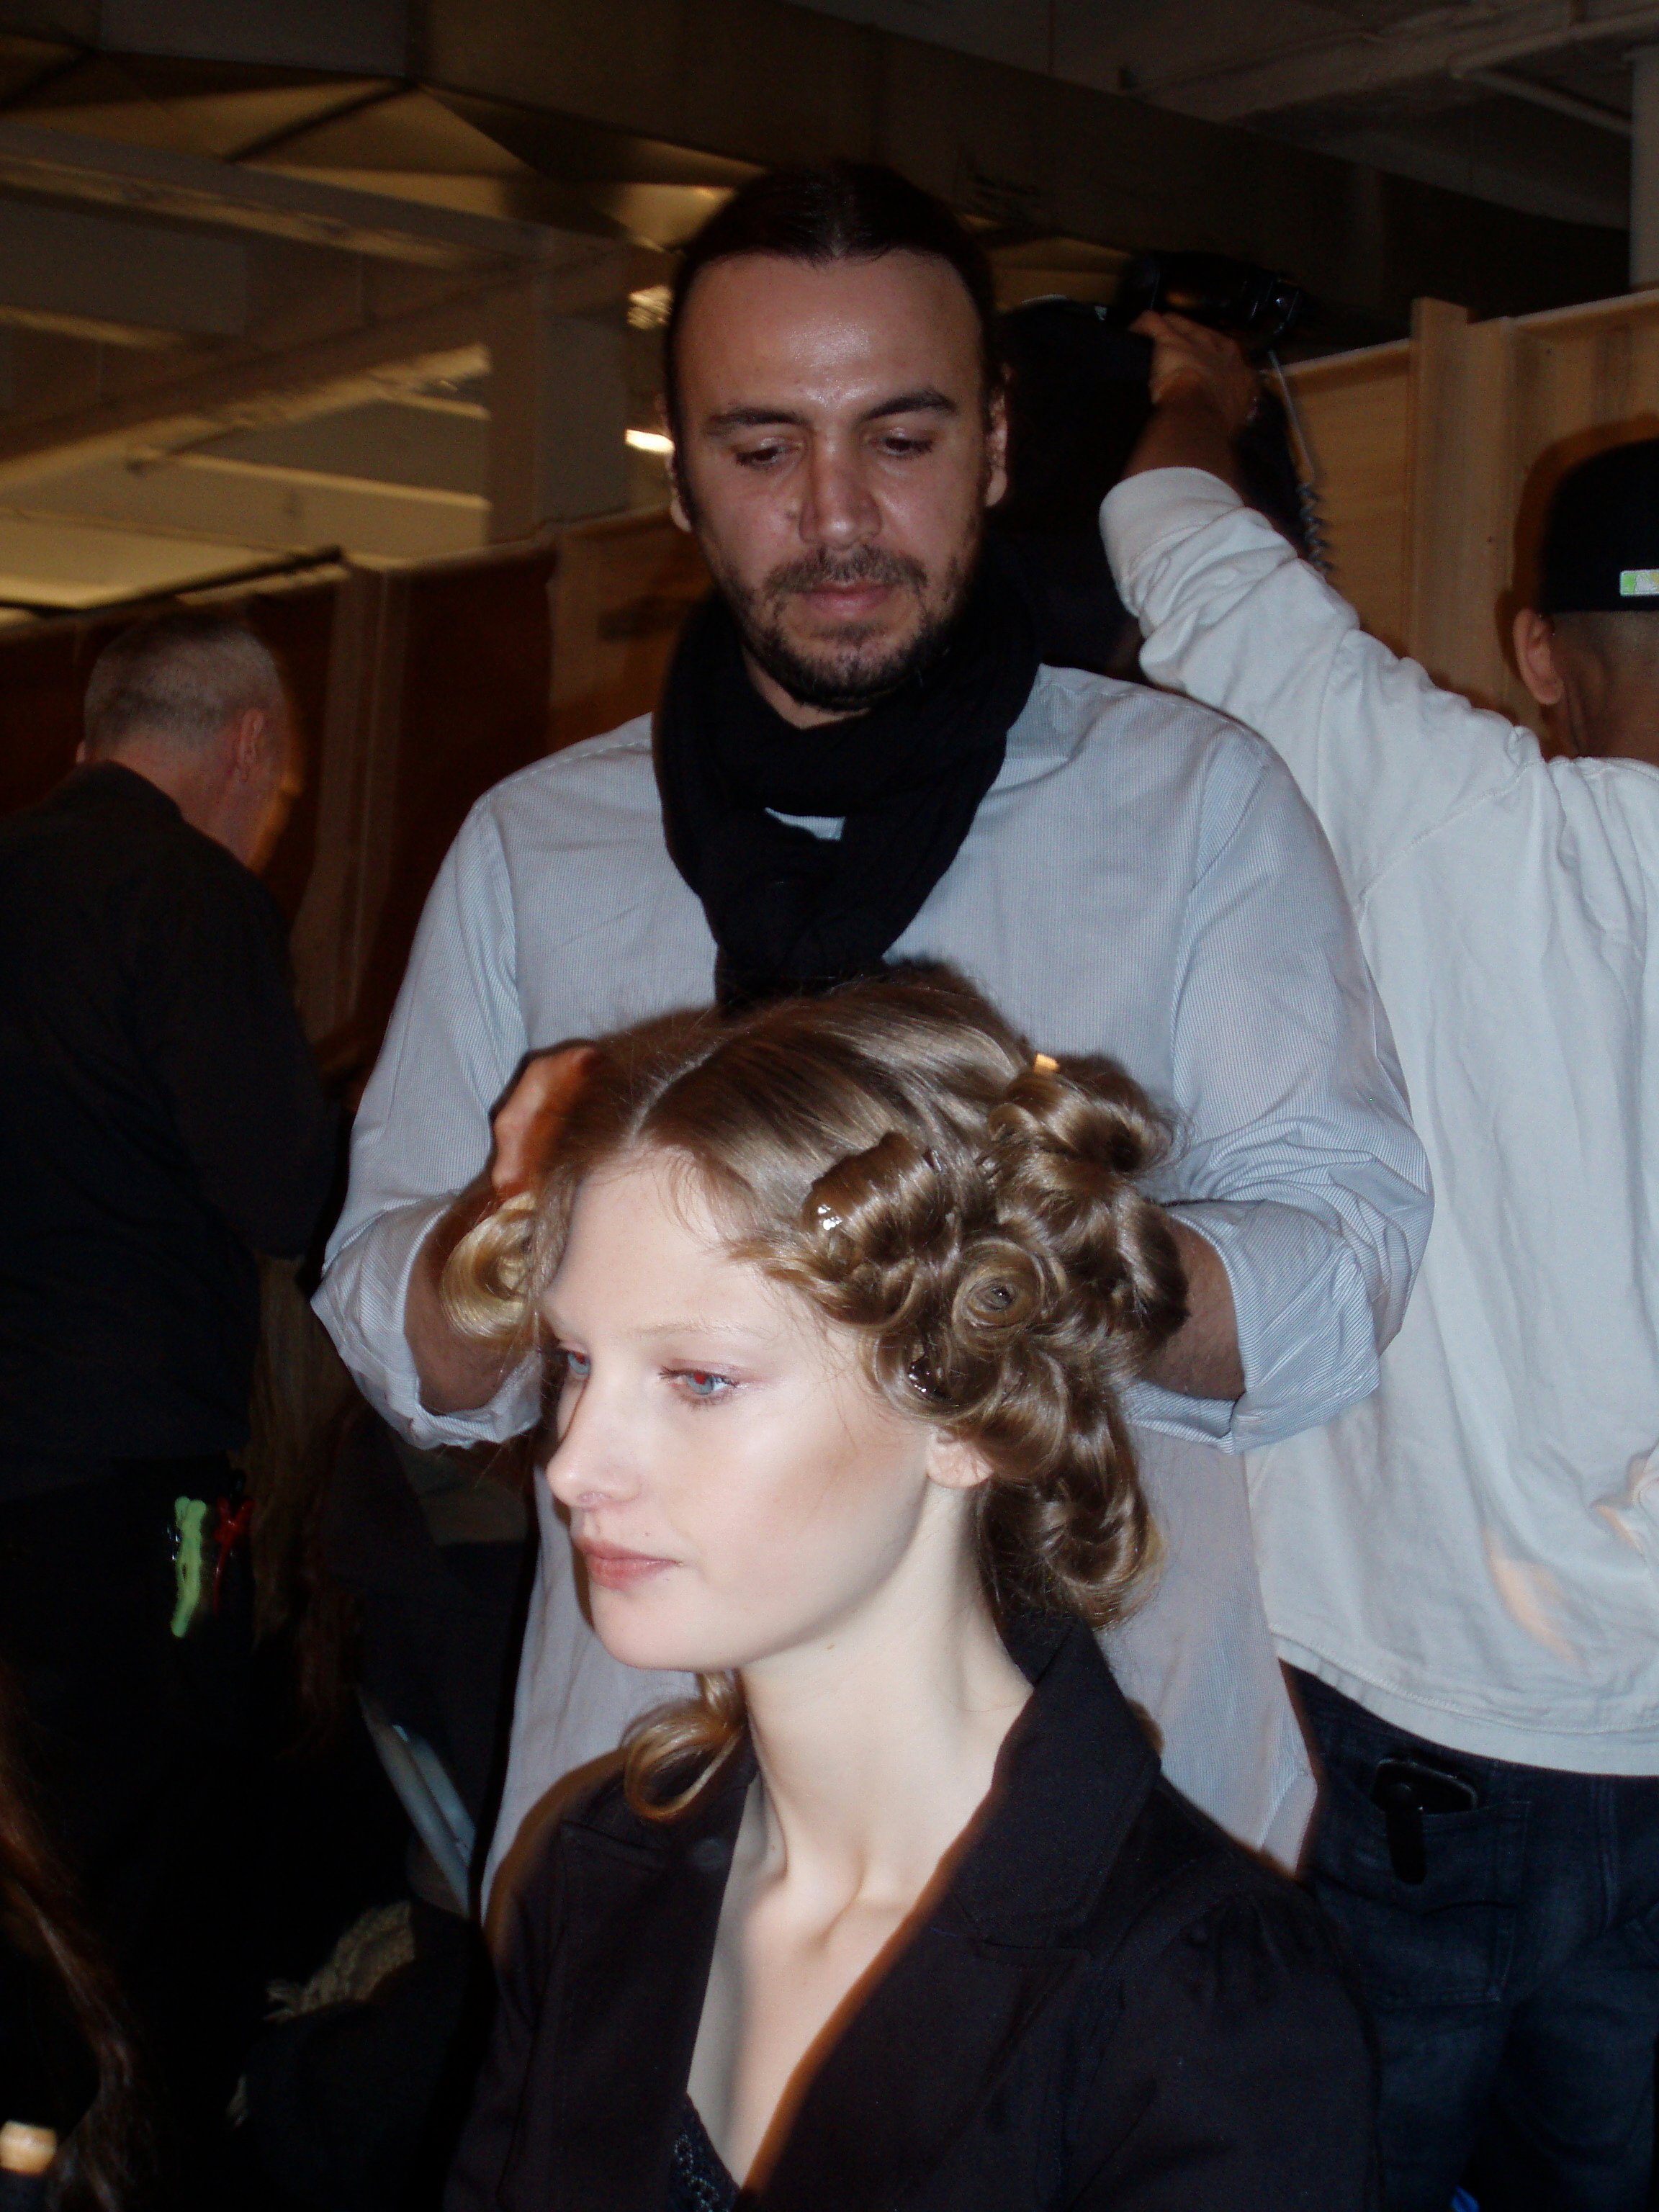 To create the curls, the stylists wrapped the hair around the barrel of a curling iron.